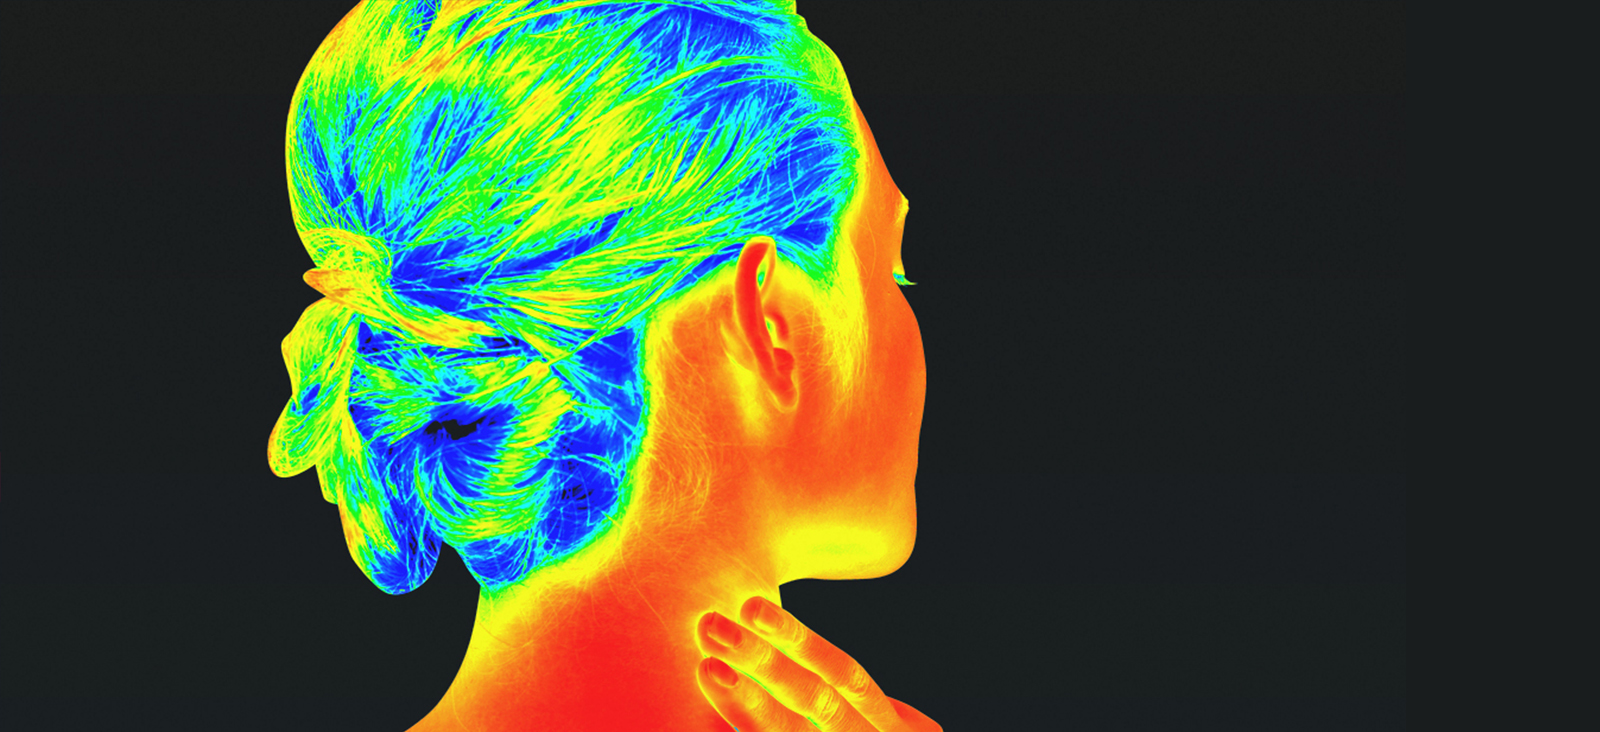 Thermal imaging scan of a person